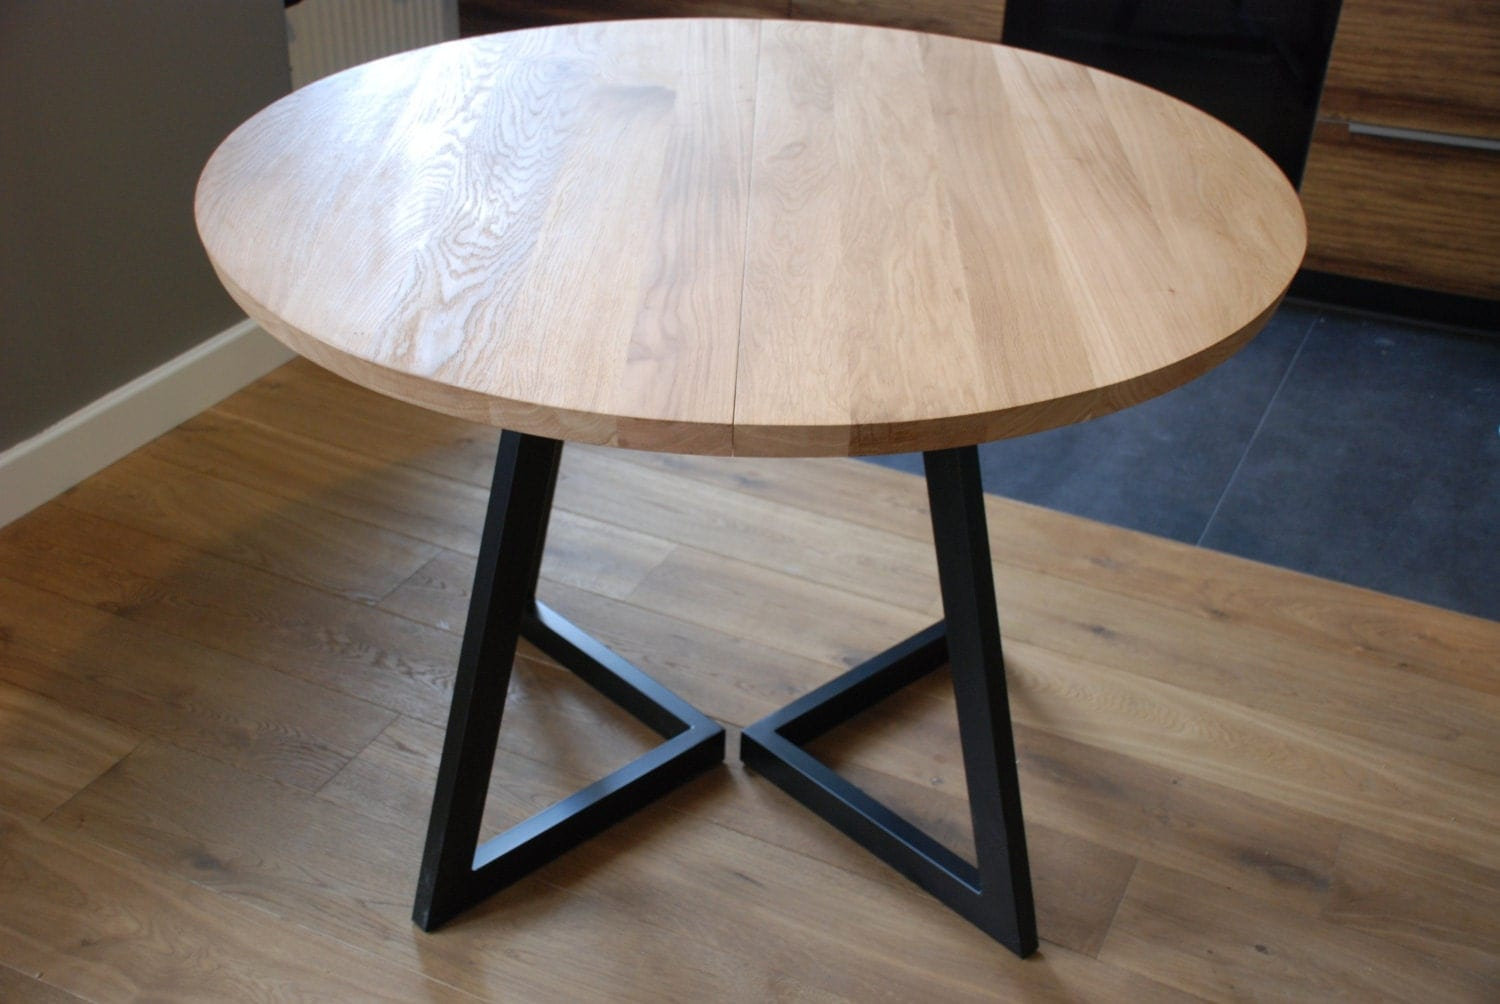 Bois et table ronde rallonges design moderne en acier for Table ronde en bois